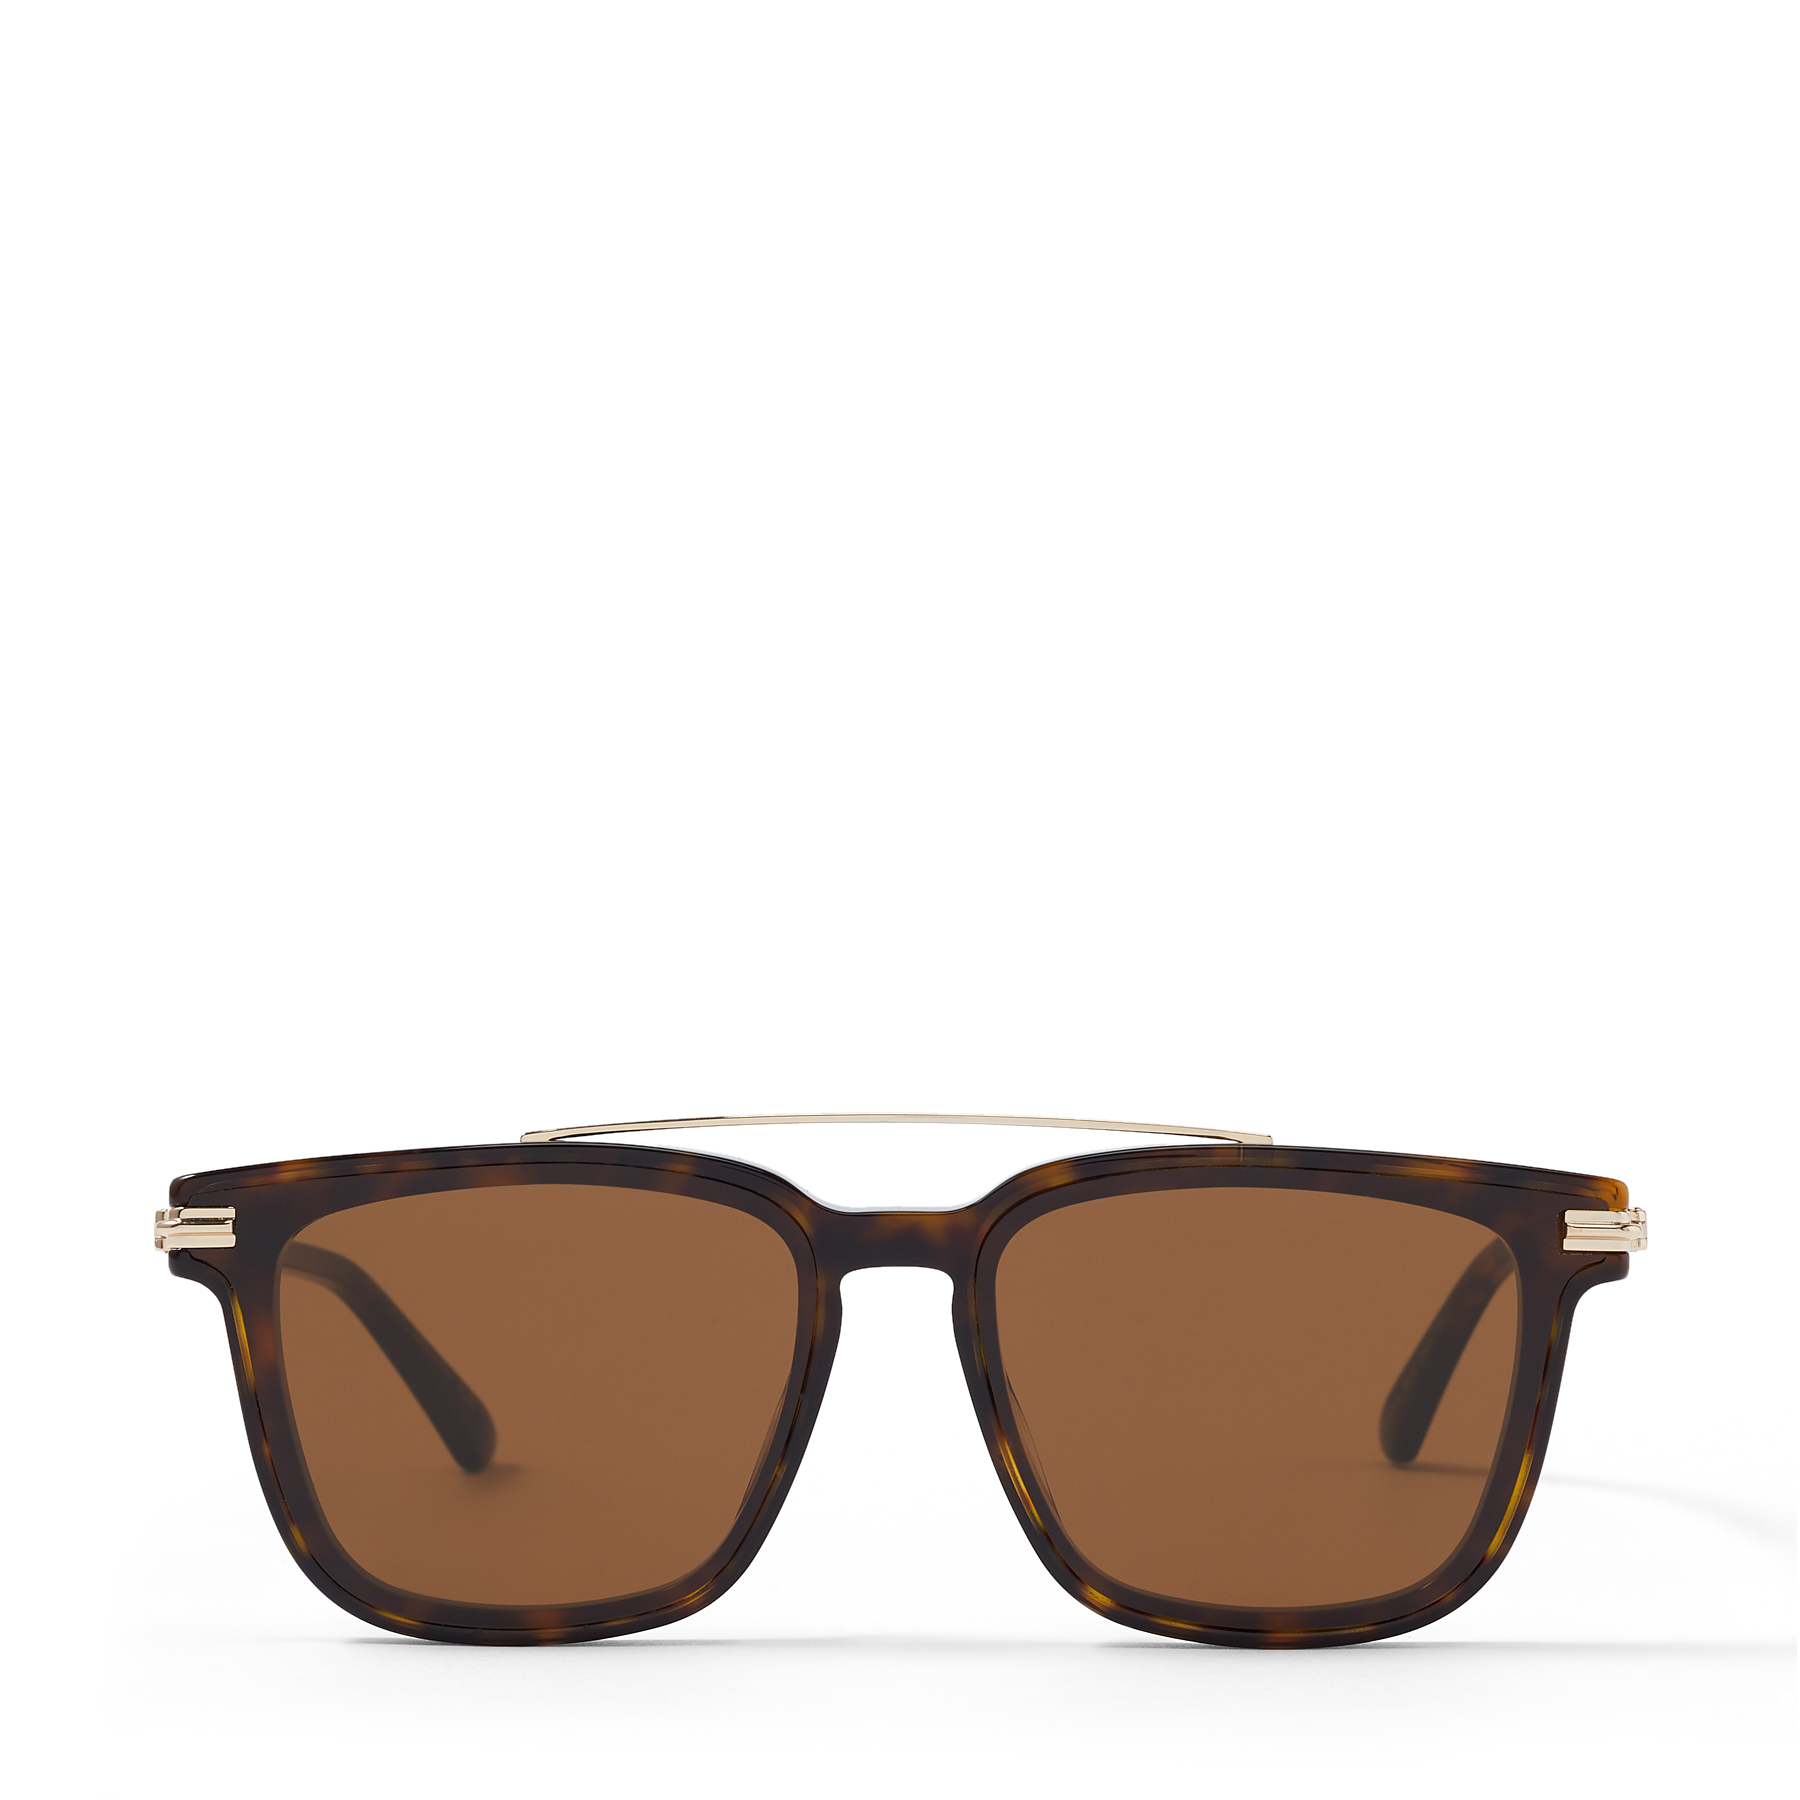 These dark havana ZED sunglasses are a sophisticated choice. They\\\'re crafted to a classic square shape with slim rose-gold temples, and set with sleek brown lenses for a refined finish.